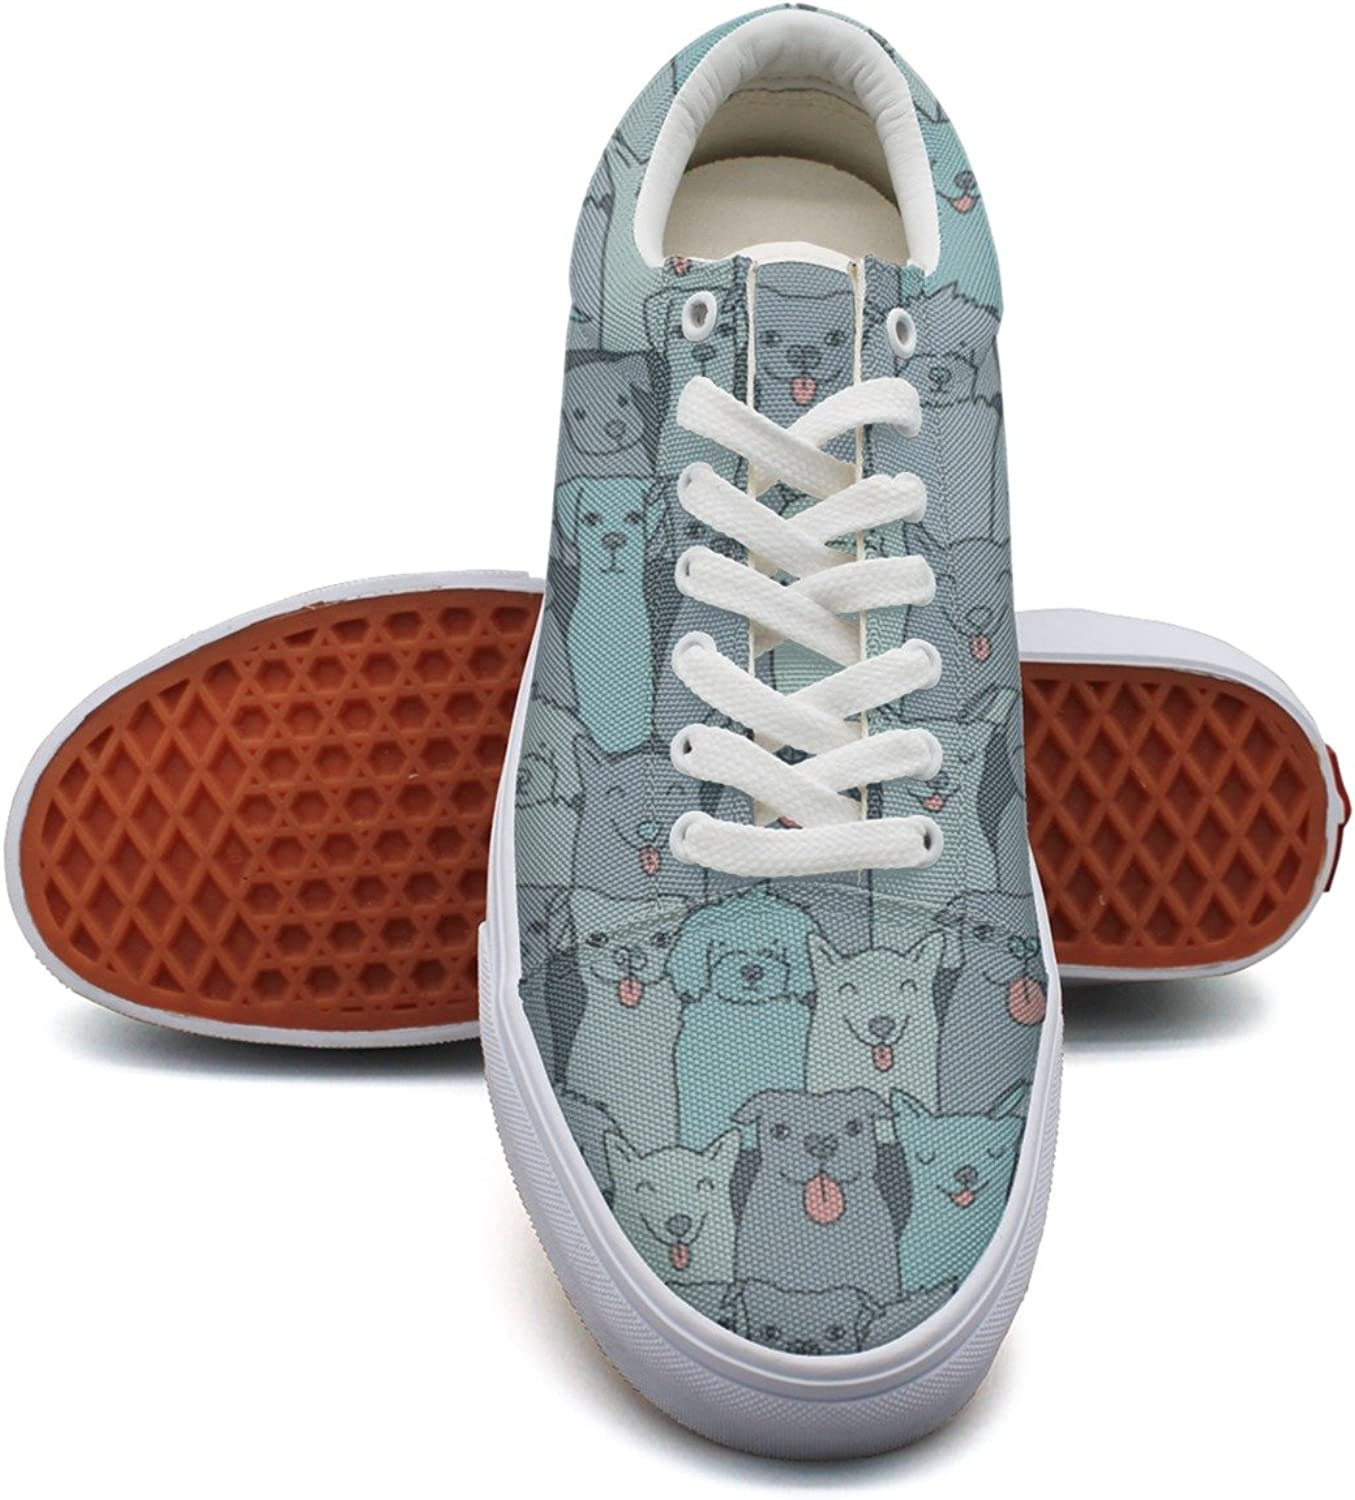 Cute Doggy Puppy bluee Pattern Fashion Canvas Sneaker For Womns 3D Printed Low Top Walking shoes